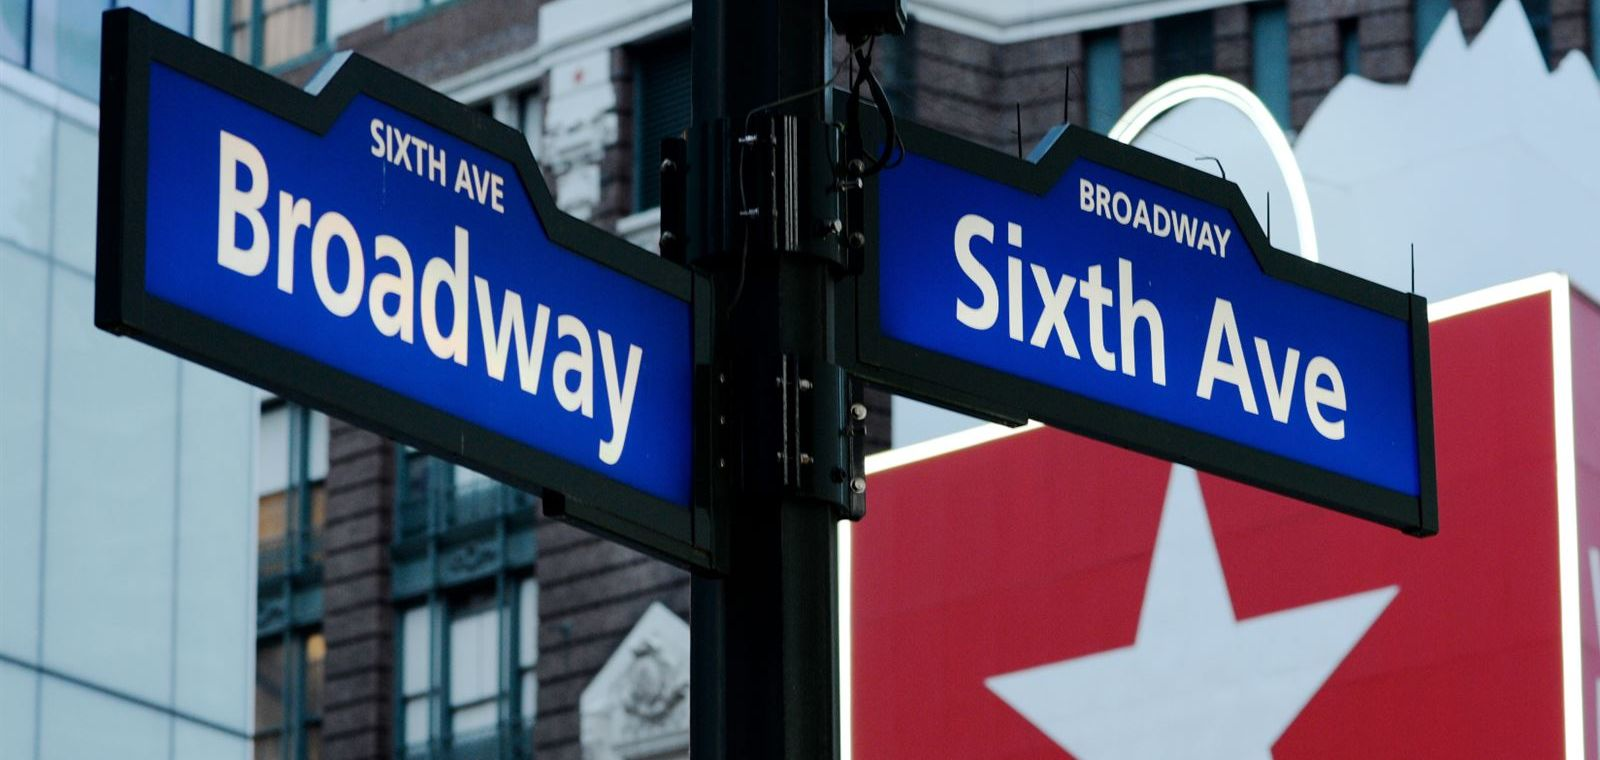 Street Signs For Broadway And Sixth Avenue